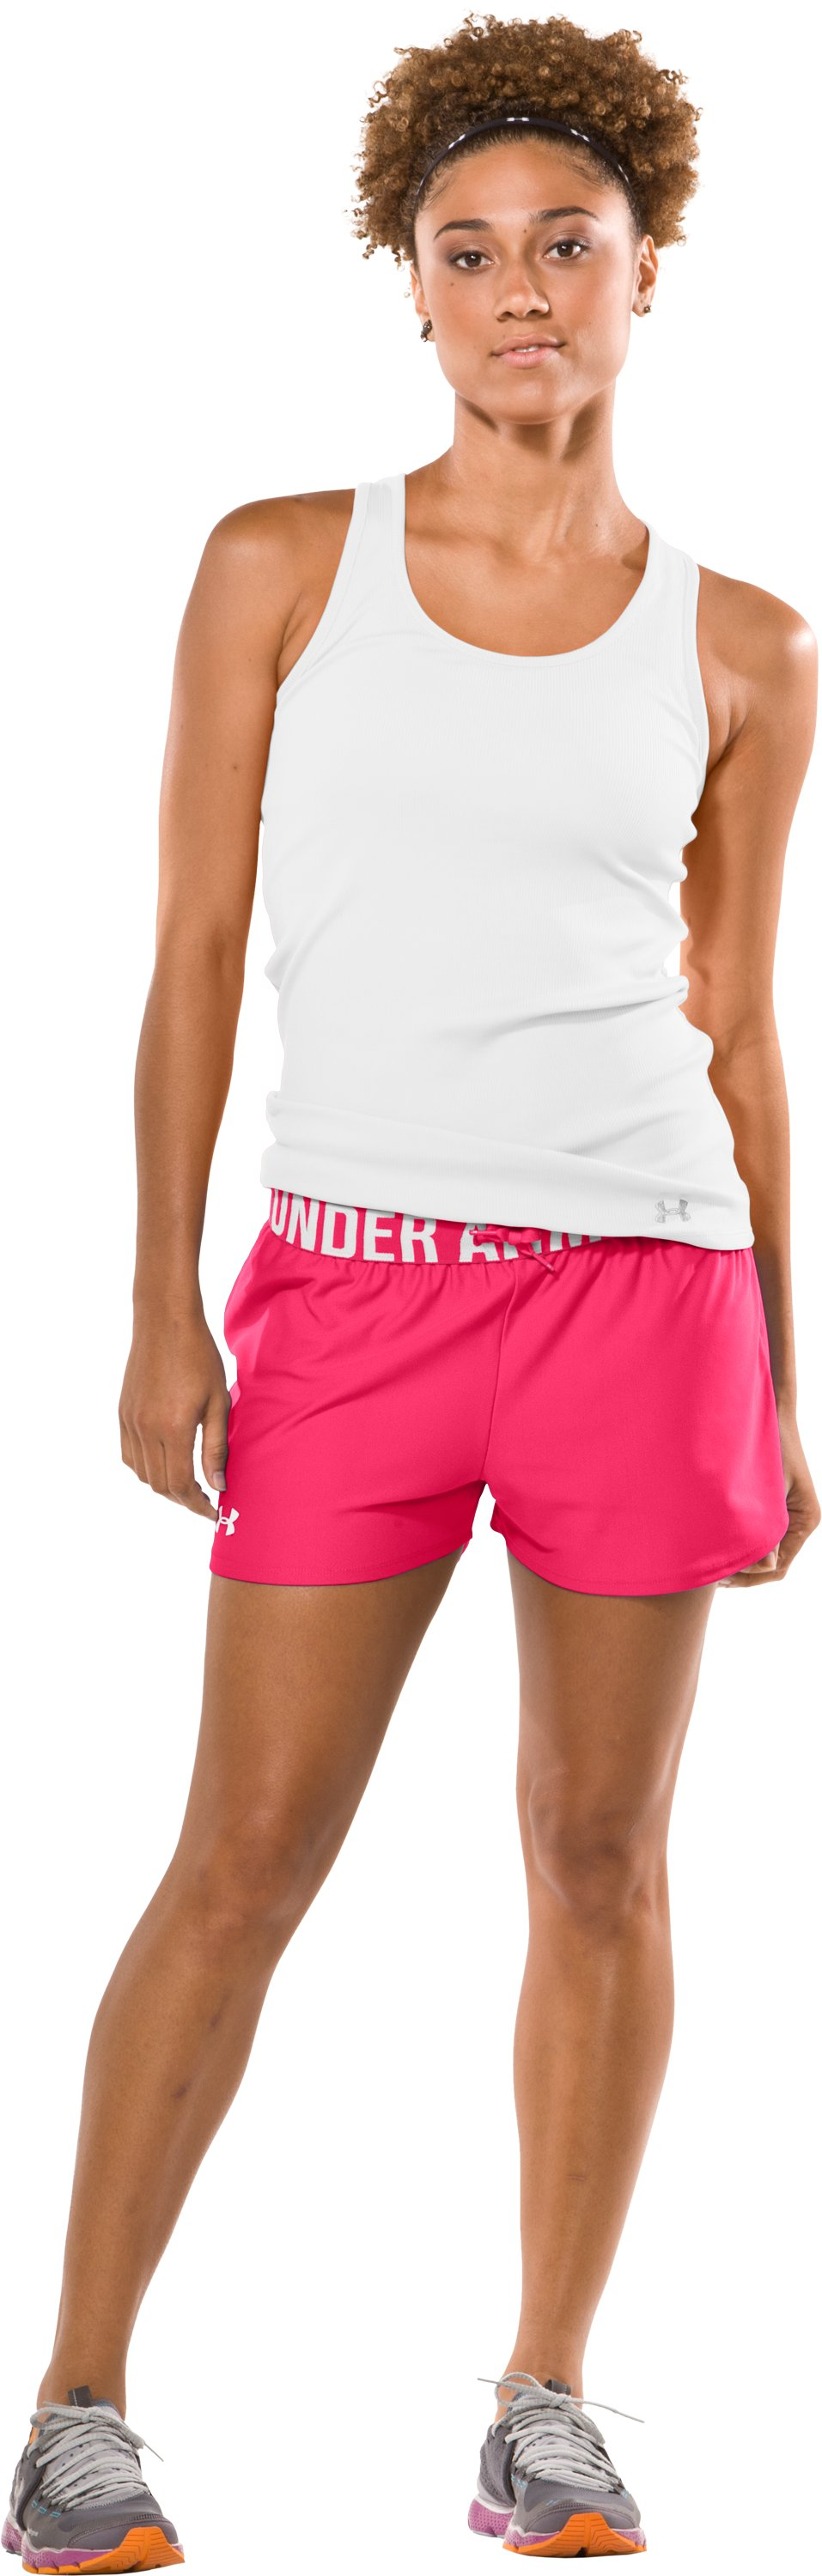 "Women's Play Up 3"" Short, Neo Pulse, Front"